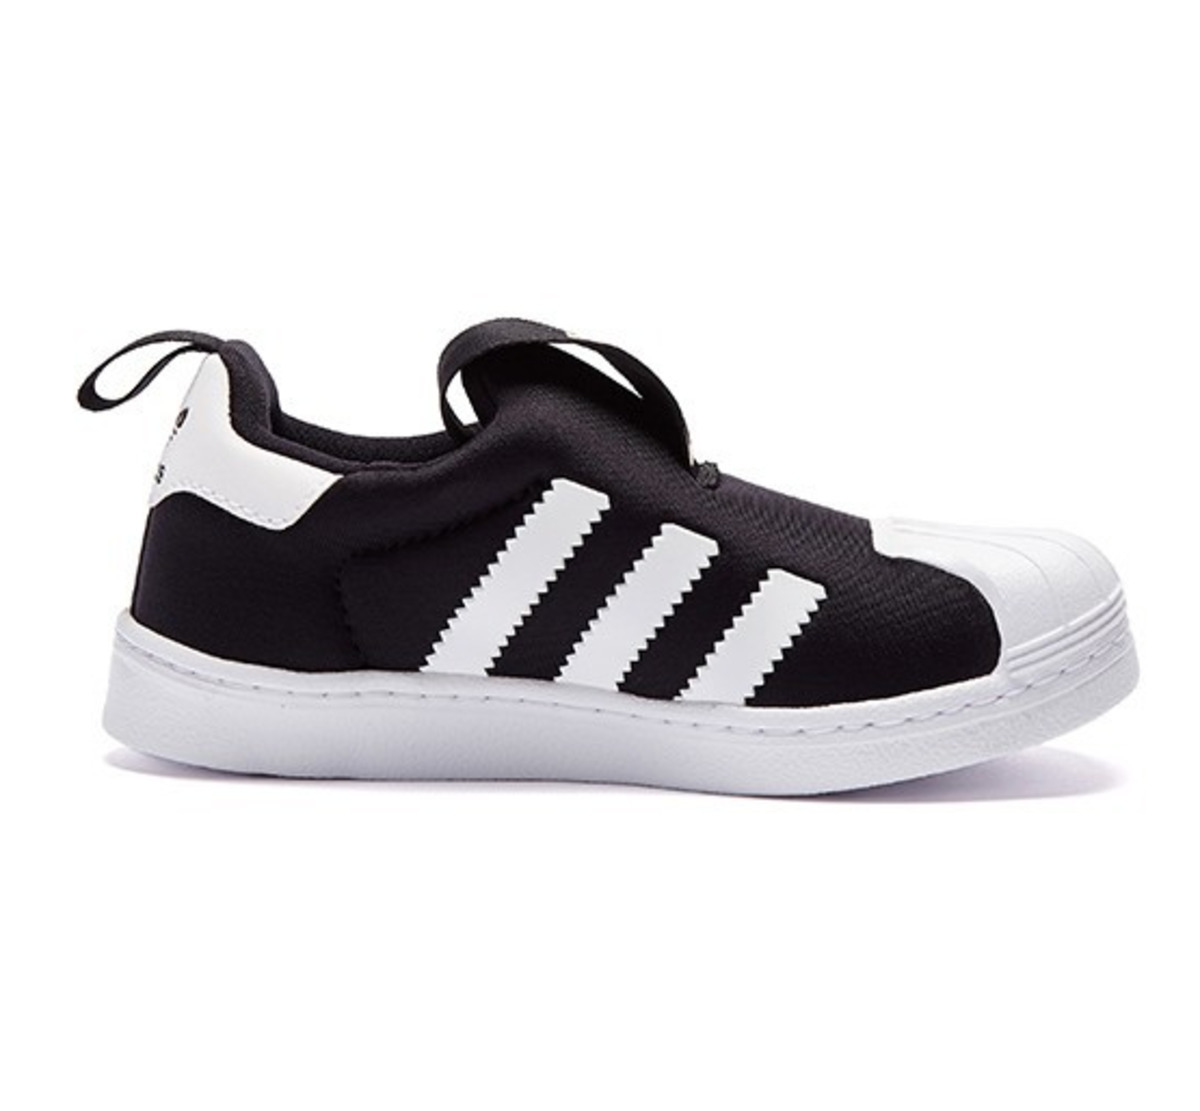 Adidas Superstar Original Kids Breathable Running Shoes Children Light Comfortable Sports Sneakers S32130 in Sneakers from Mother Kids